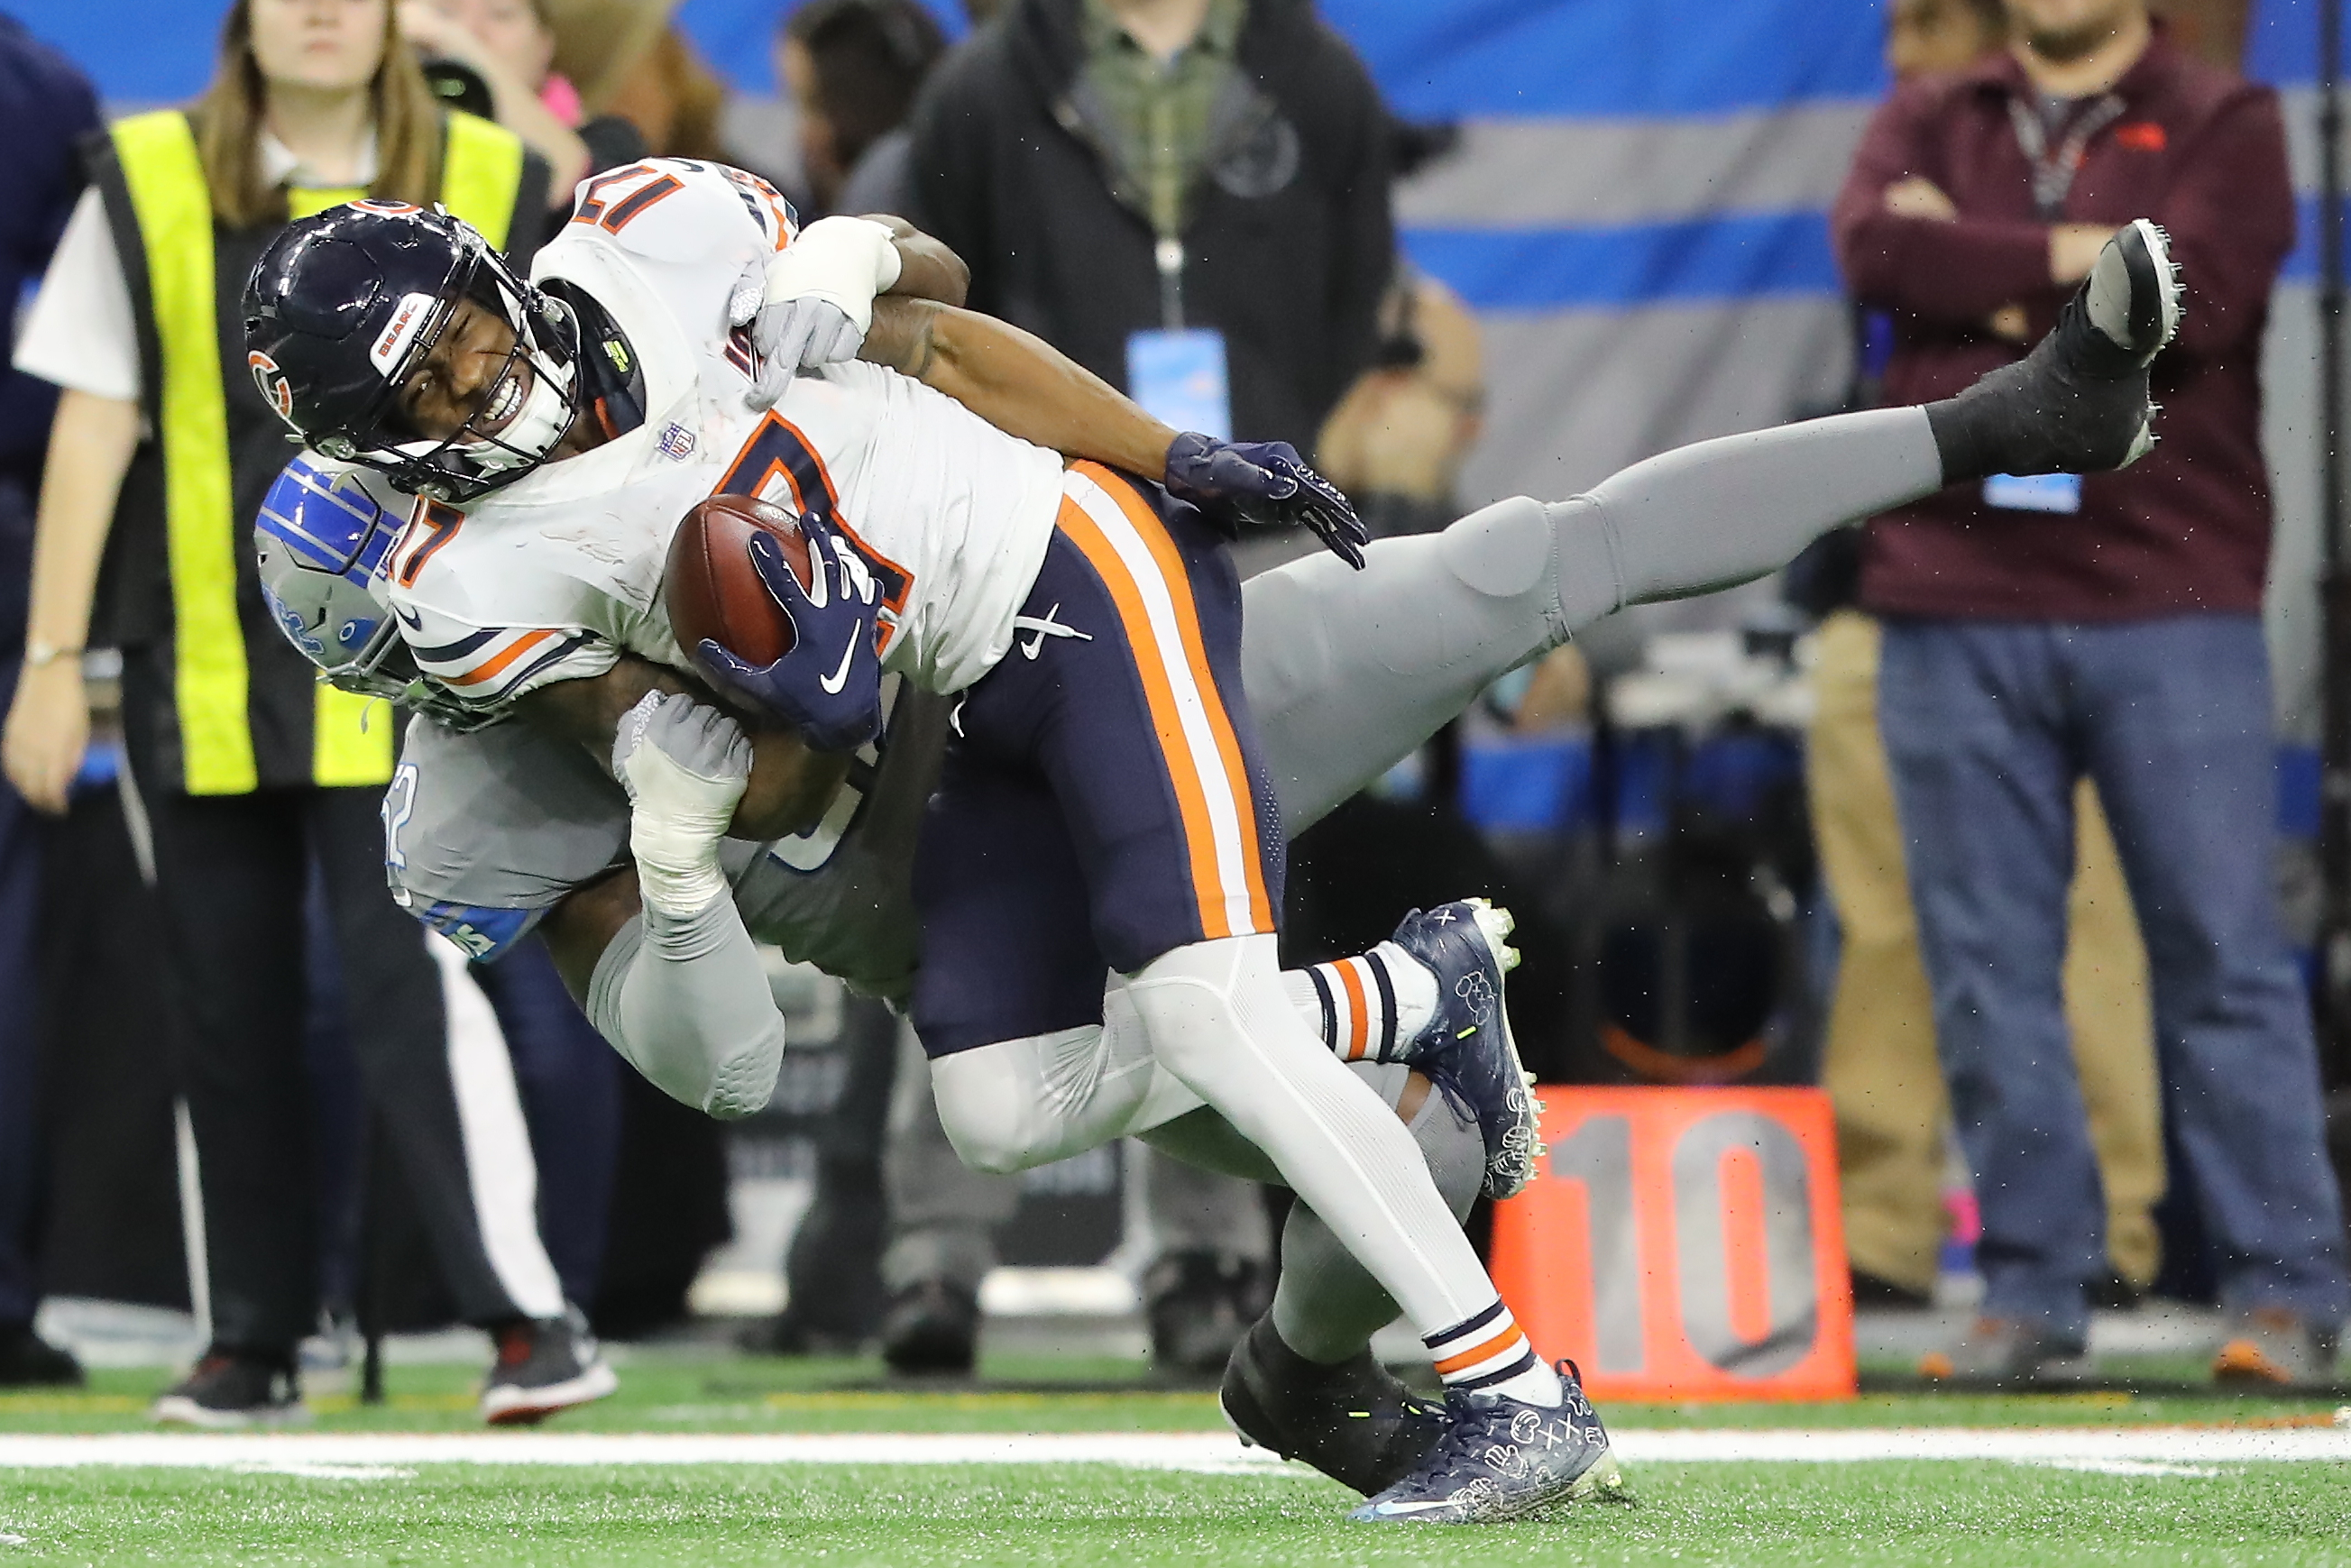 Bears wide receiver Anthony Miller (17, making a catch against Lions linebacker Christian Jones) had nine receptions for 140 yards in the Bears' 24-20 victory over Detroit on Thanksgiving at Ford Field. In his last four games, Miller has 24 receptions for 313 yards (13.0 avg.) and one touchdown.